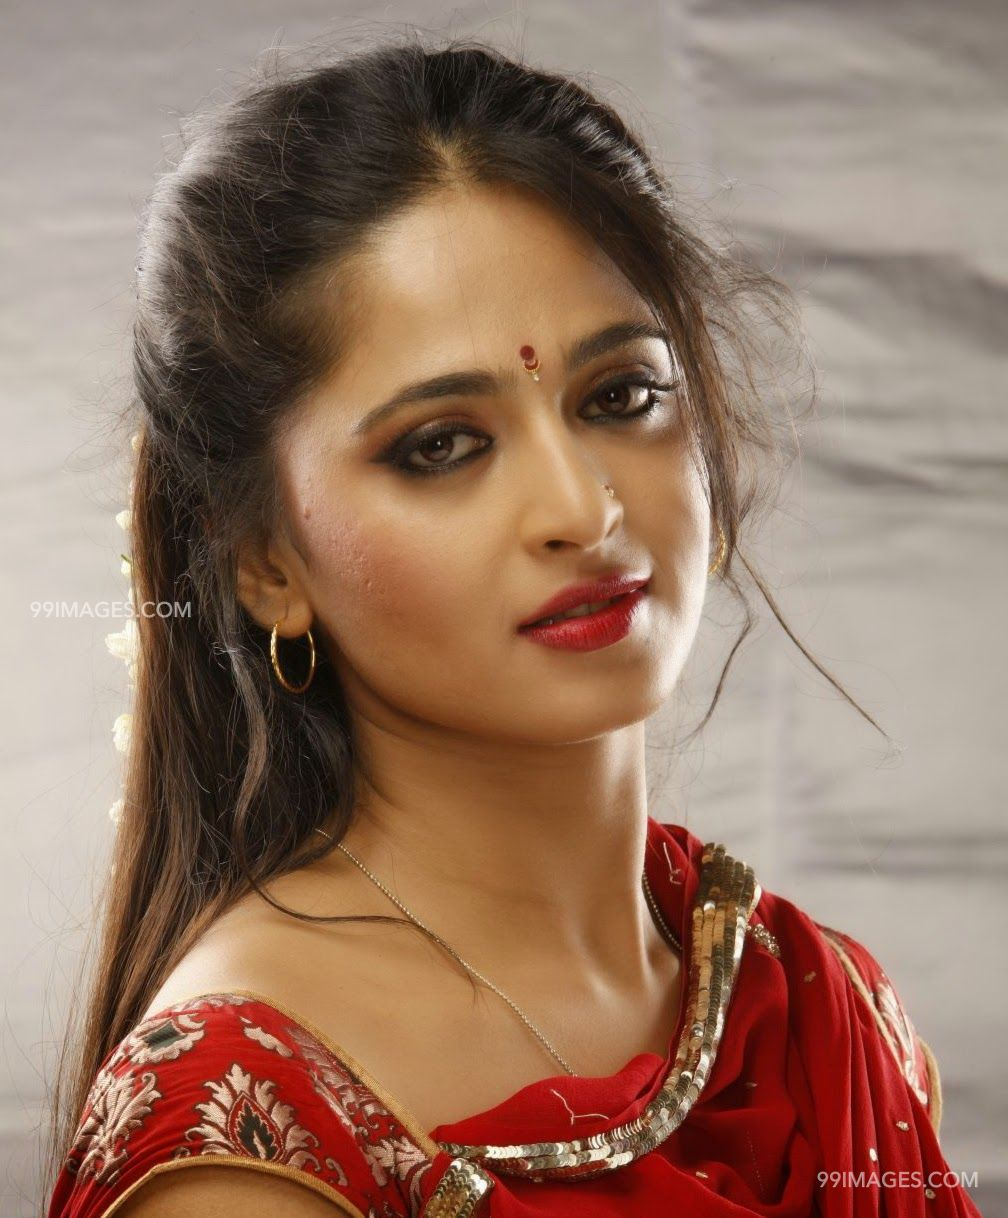 95 Anushka Shetty Beautiful Hd Photoshoot Stills 1080P 2019